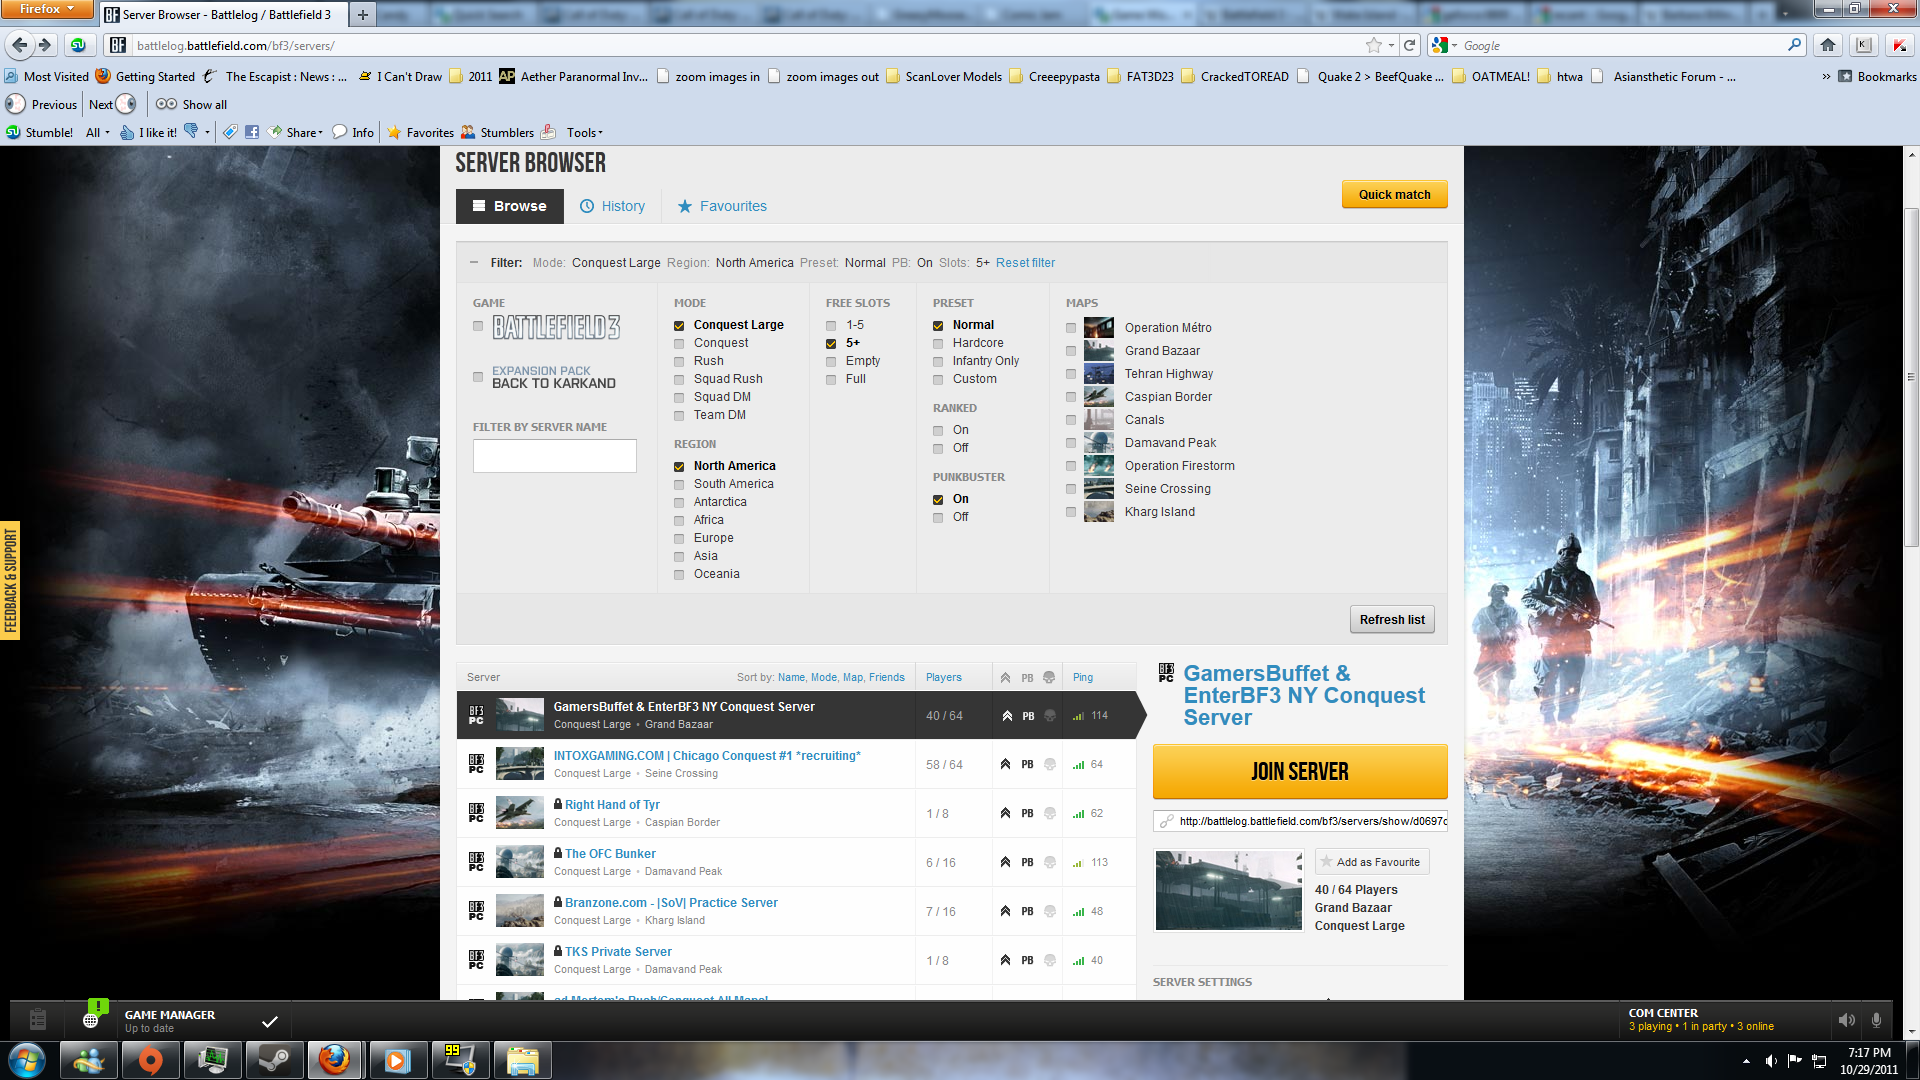 Battlefield 3 Windows The Battlelog server browser